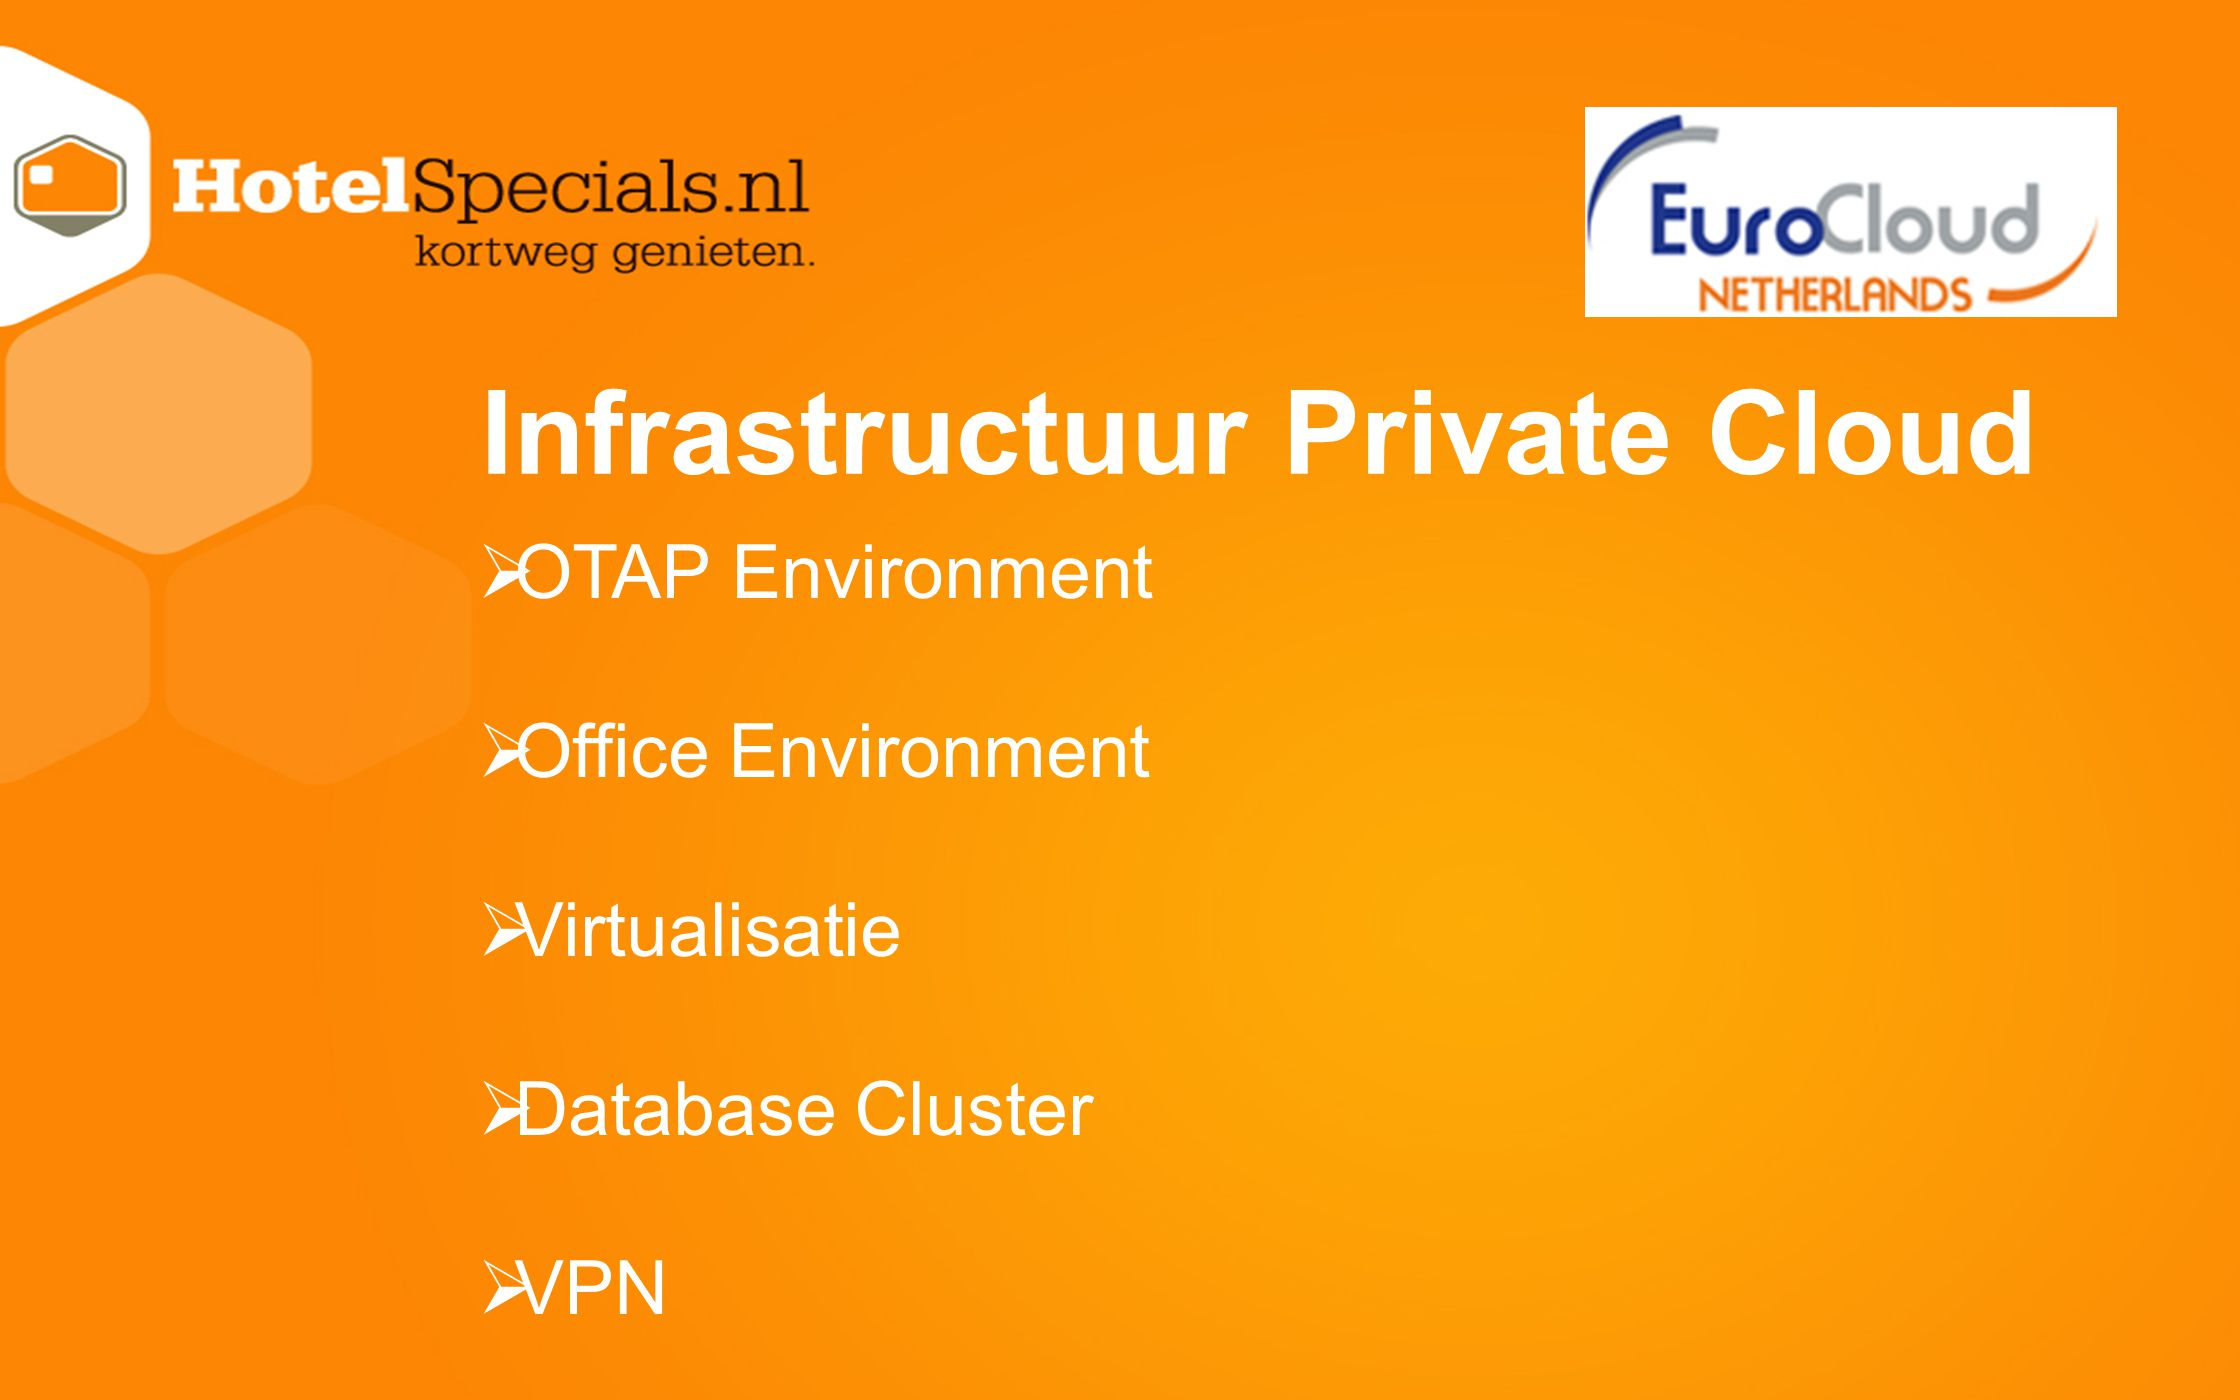 Infrastructuur Private Cloud